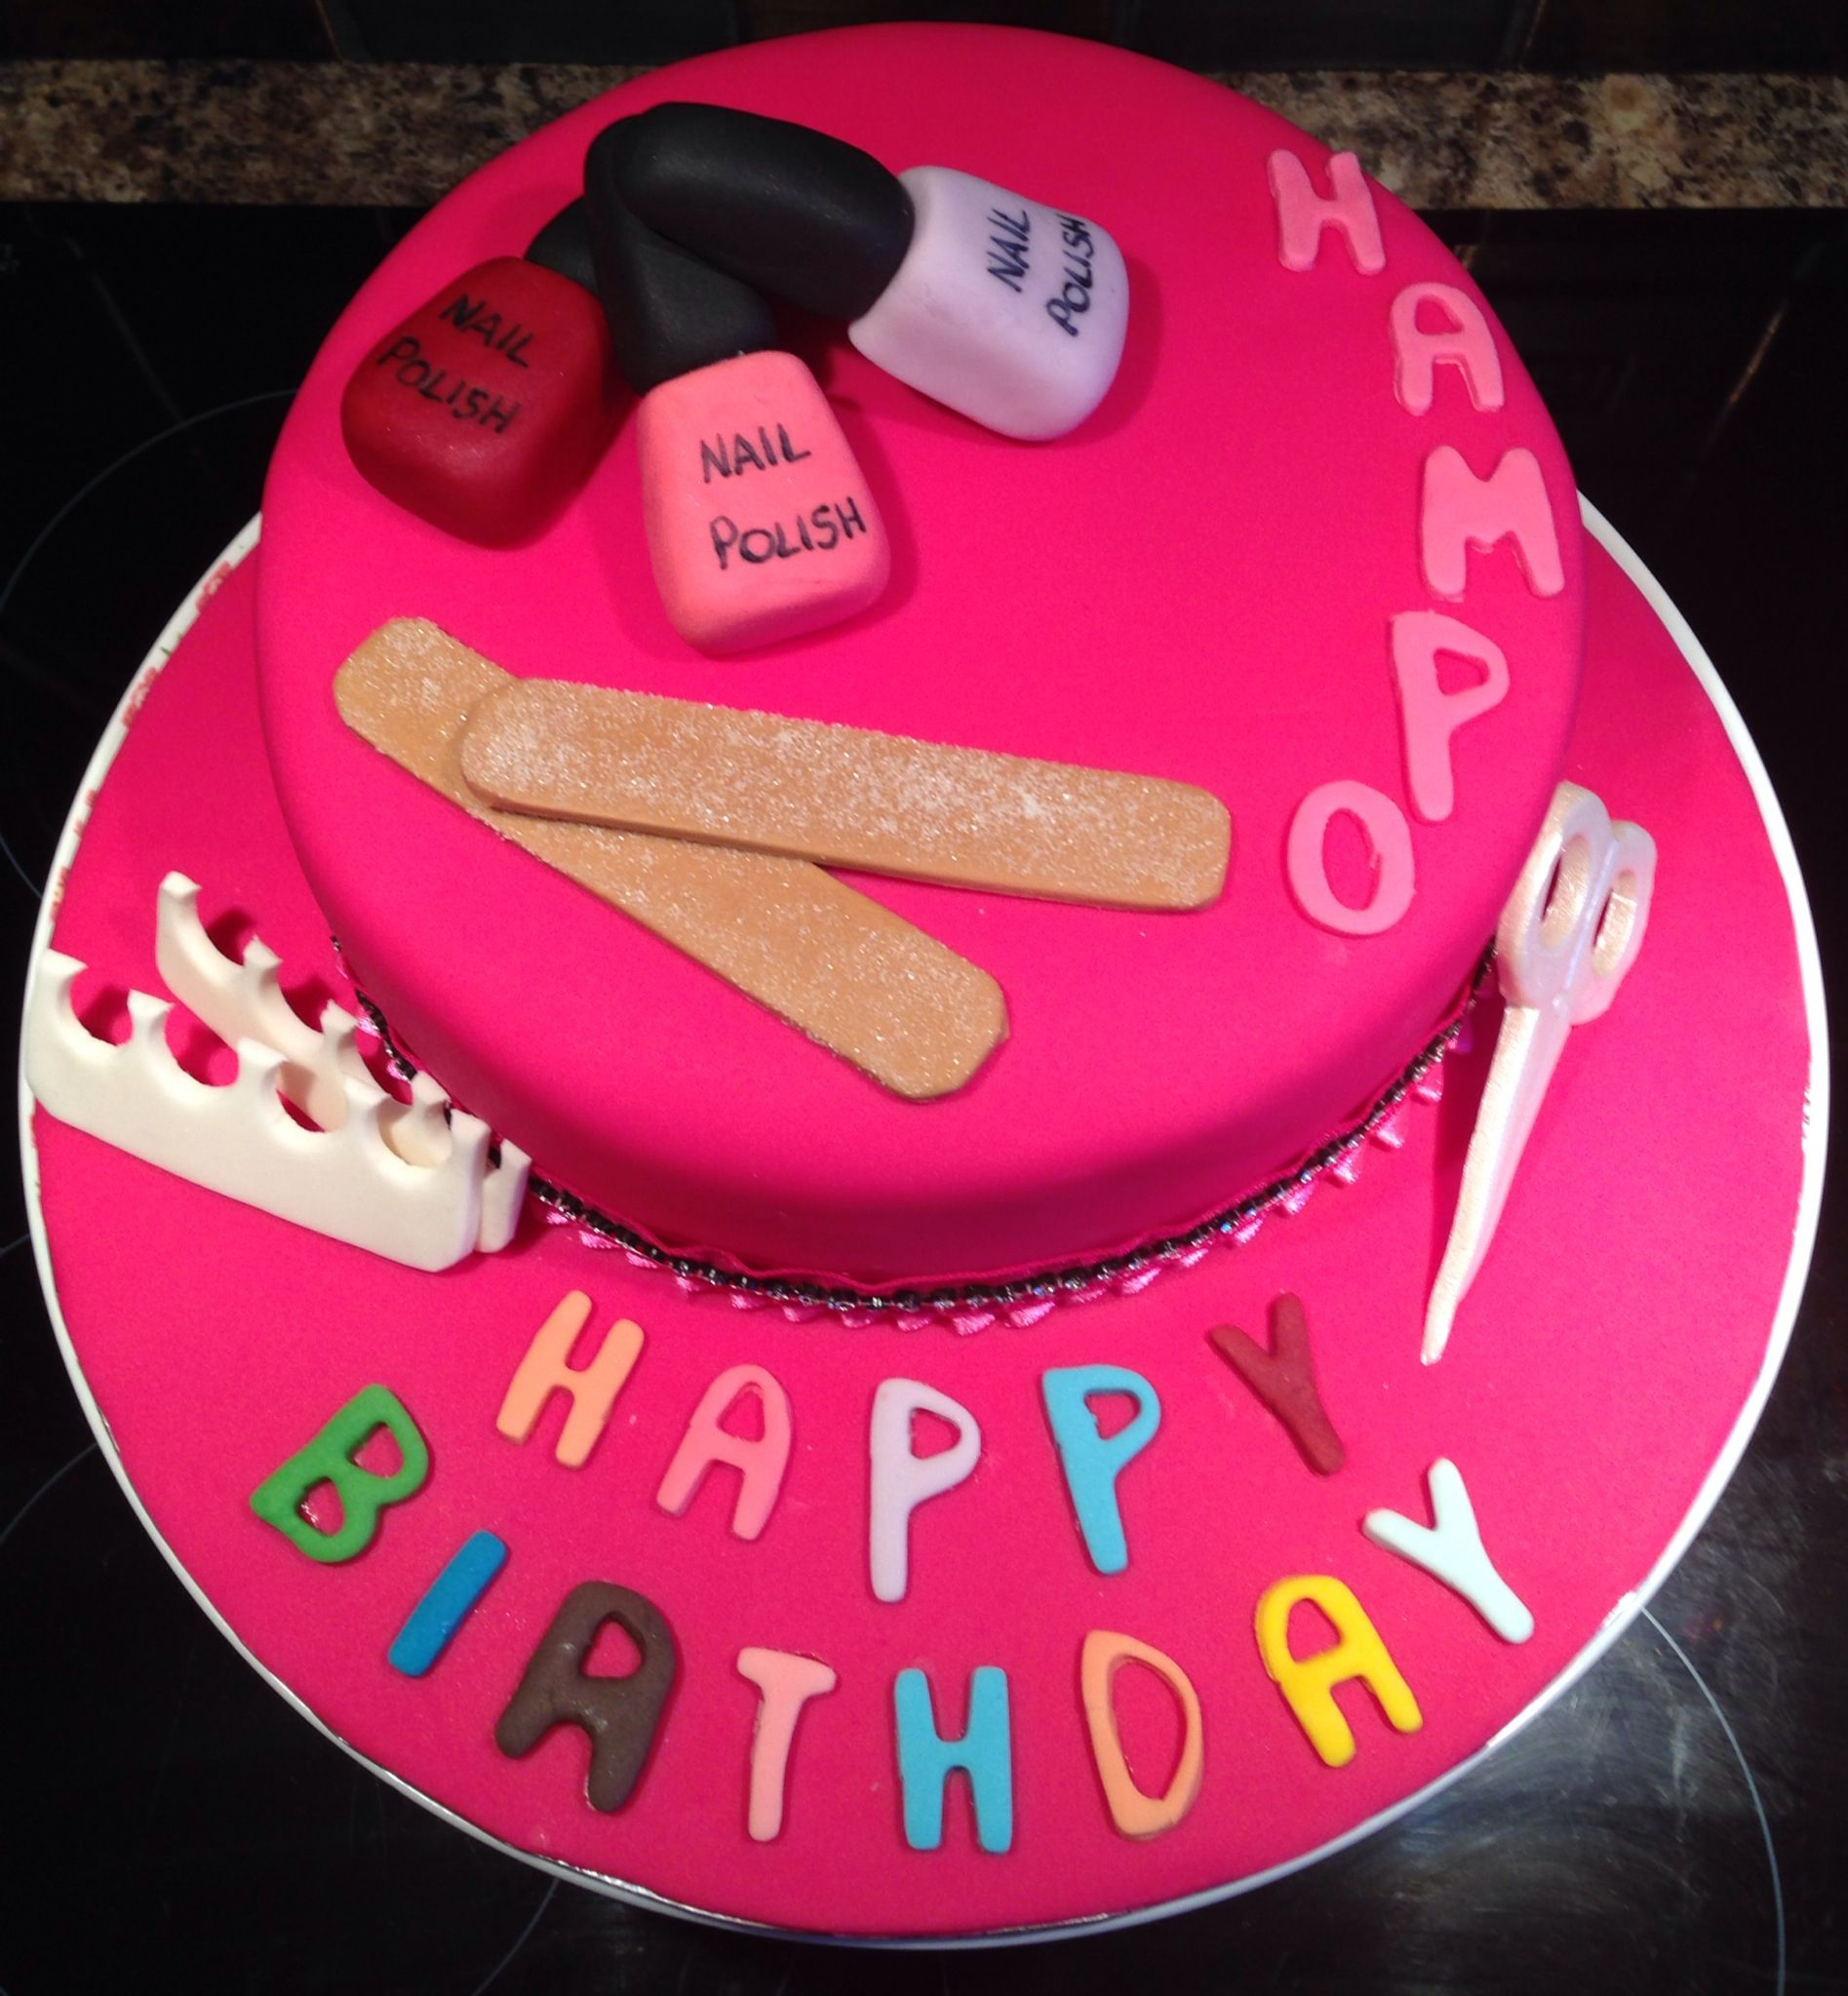 Nail Cake: Emery Boards, Scissors And Toe Spacers